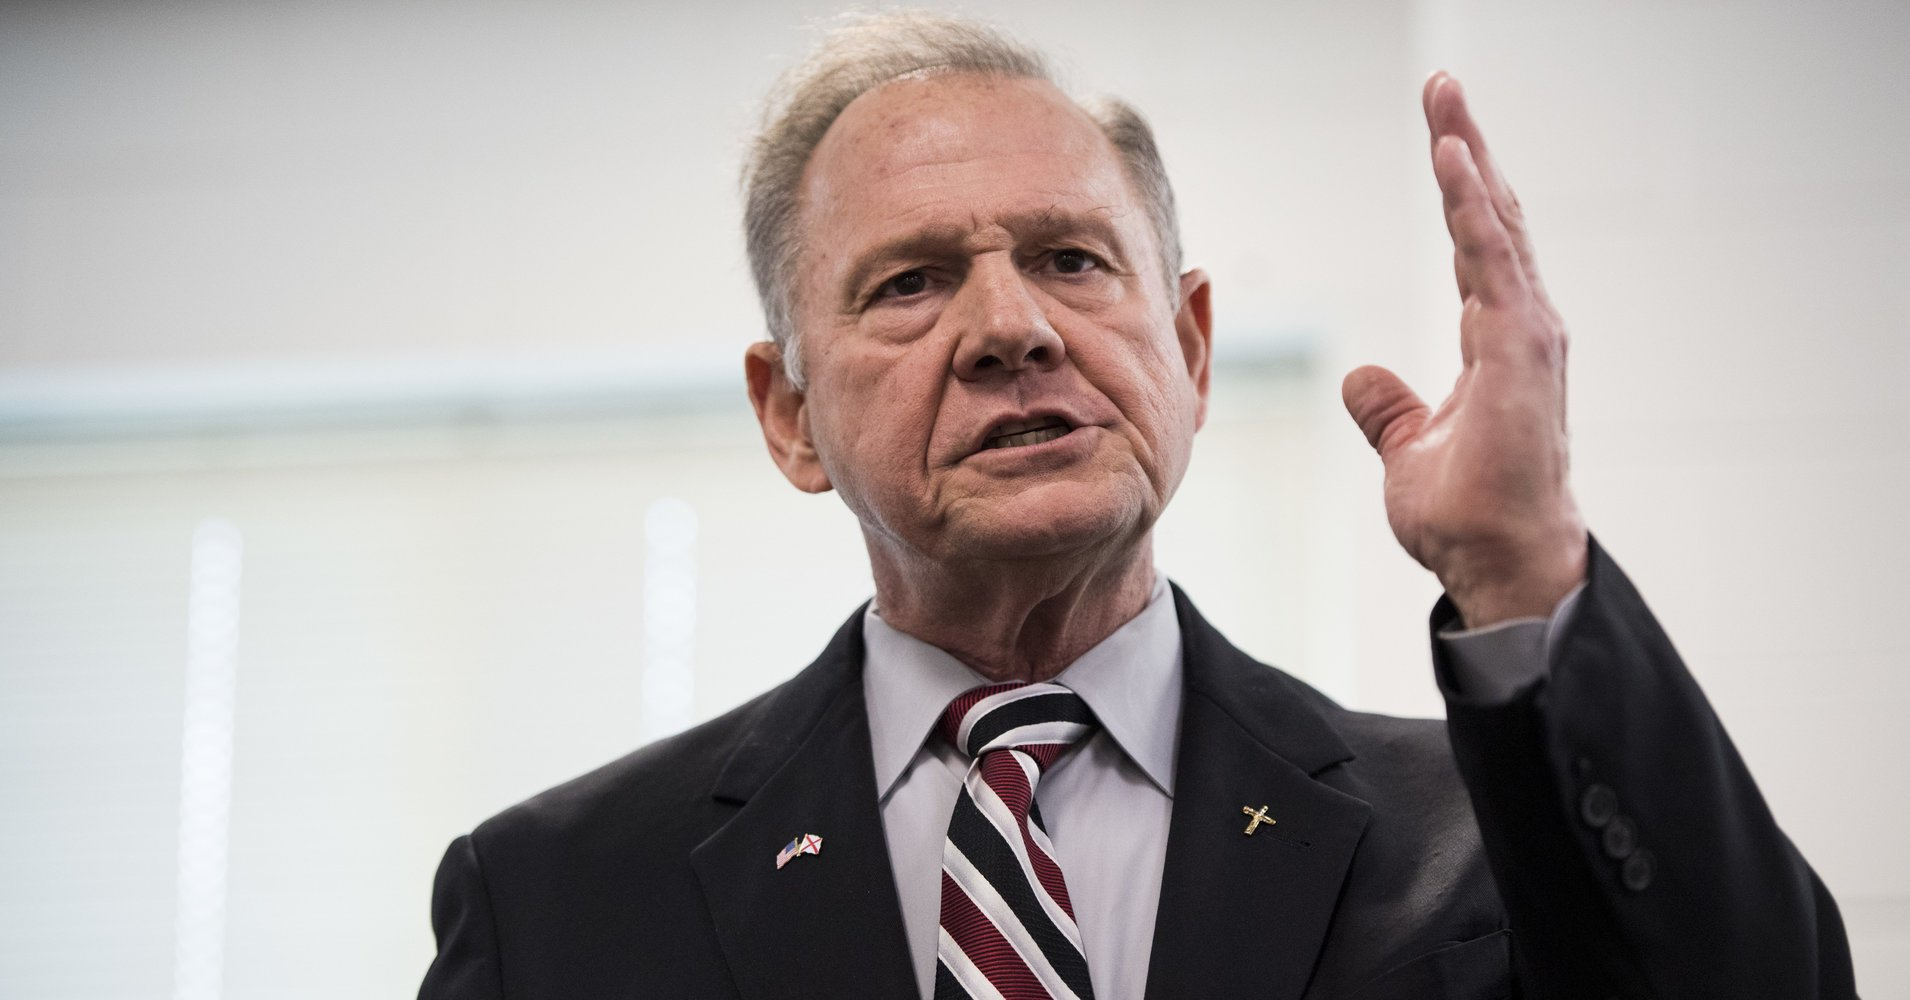 Alabama GOP Senate candidate Roy Moore once compared preschool to Nazi-style indoctrination https://t.co/TvmOxM4ZDR https://t.co/fv0Ome0dvV